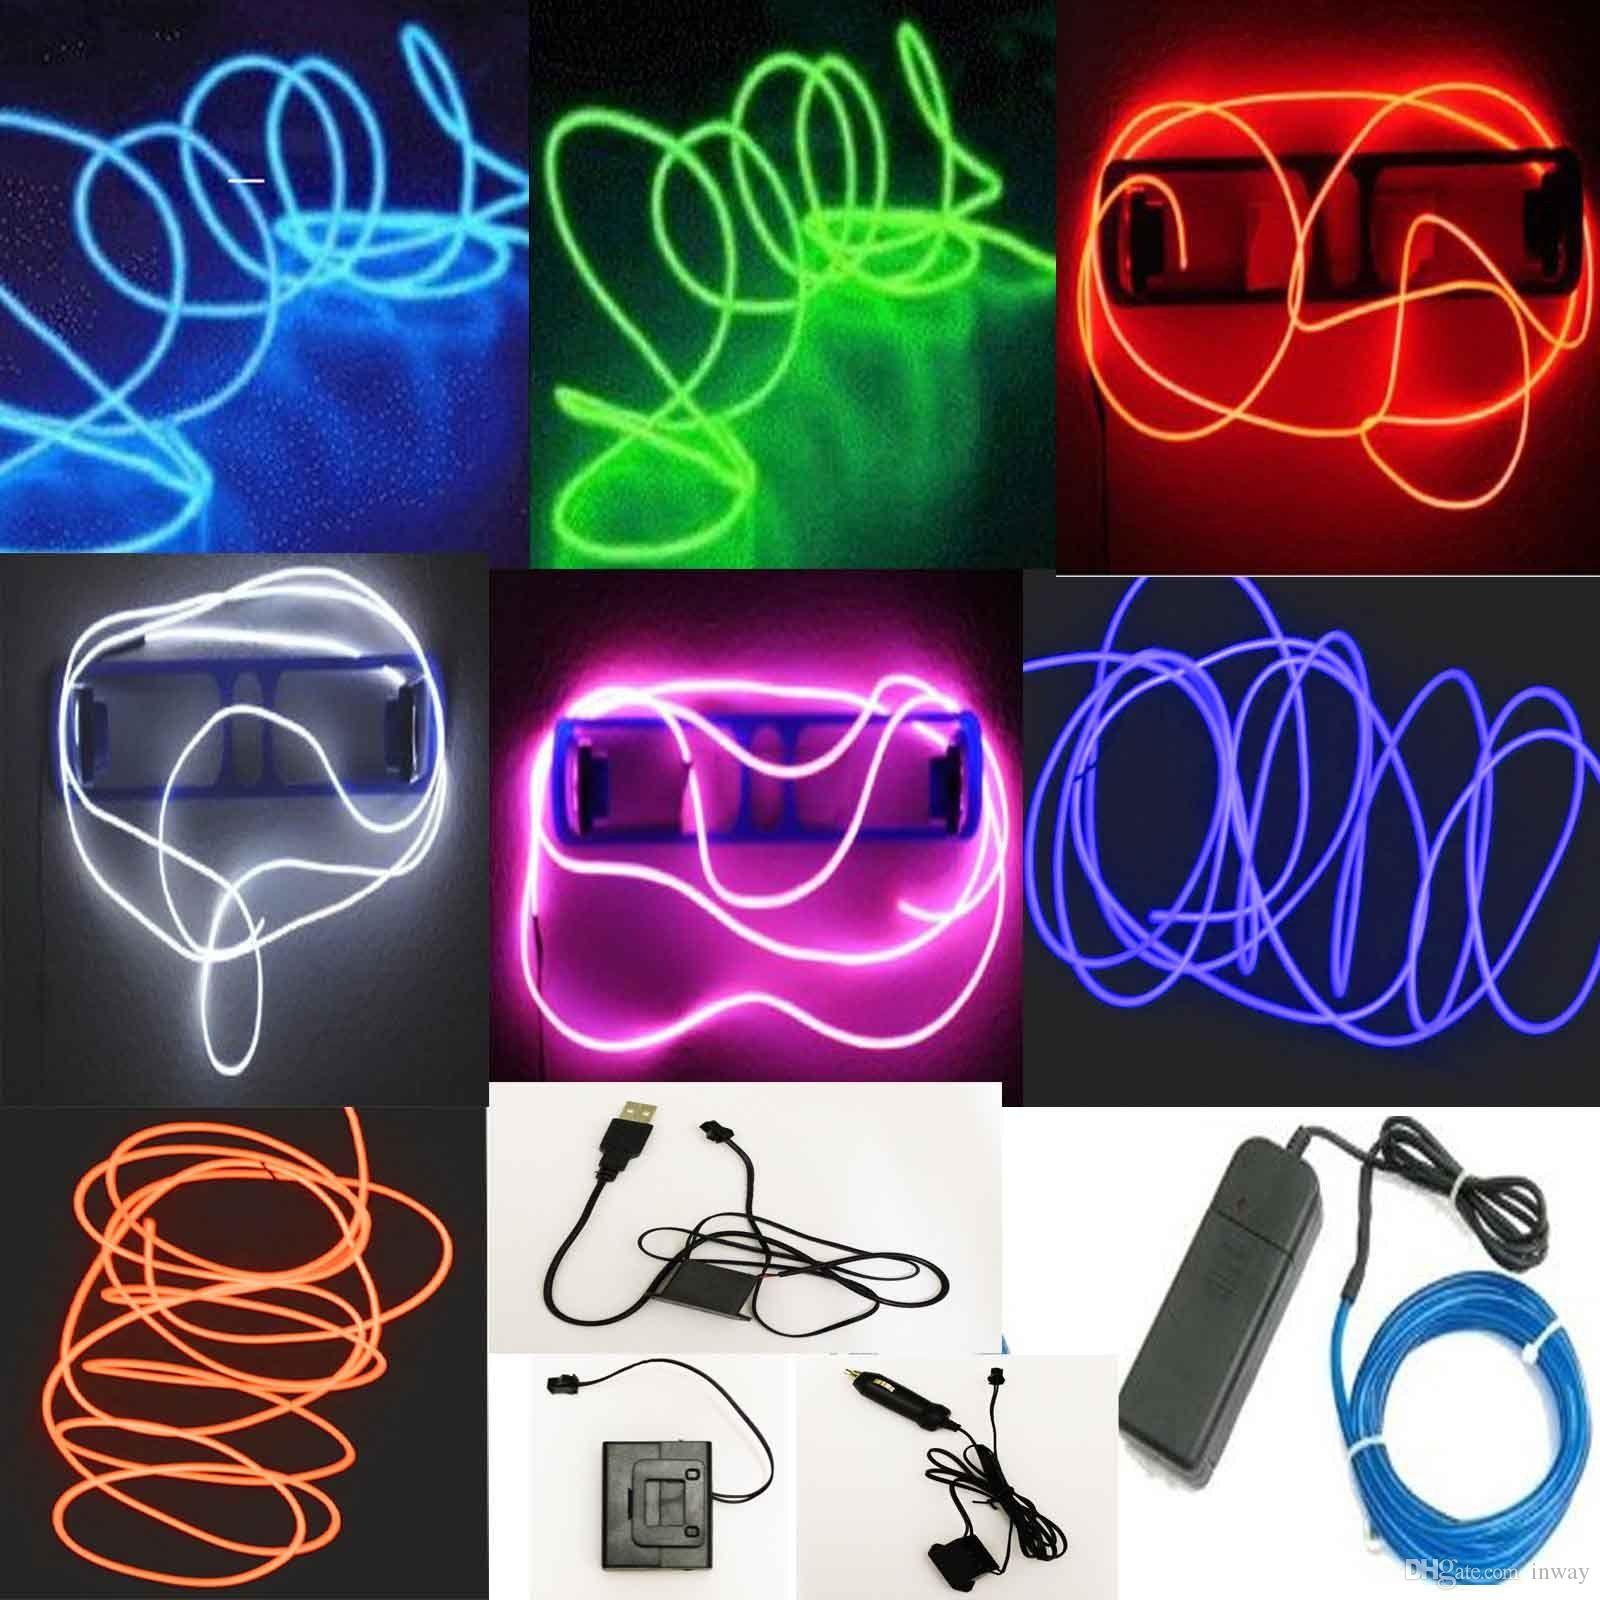 5m flexible neon led light glow el wire string strip rope tube car 5m flexible neon led light glow el wire string strip rope tube car dance partycontroller decorative strip lights n687 a led strip light kits 3528 led strip aloadofball Gallery